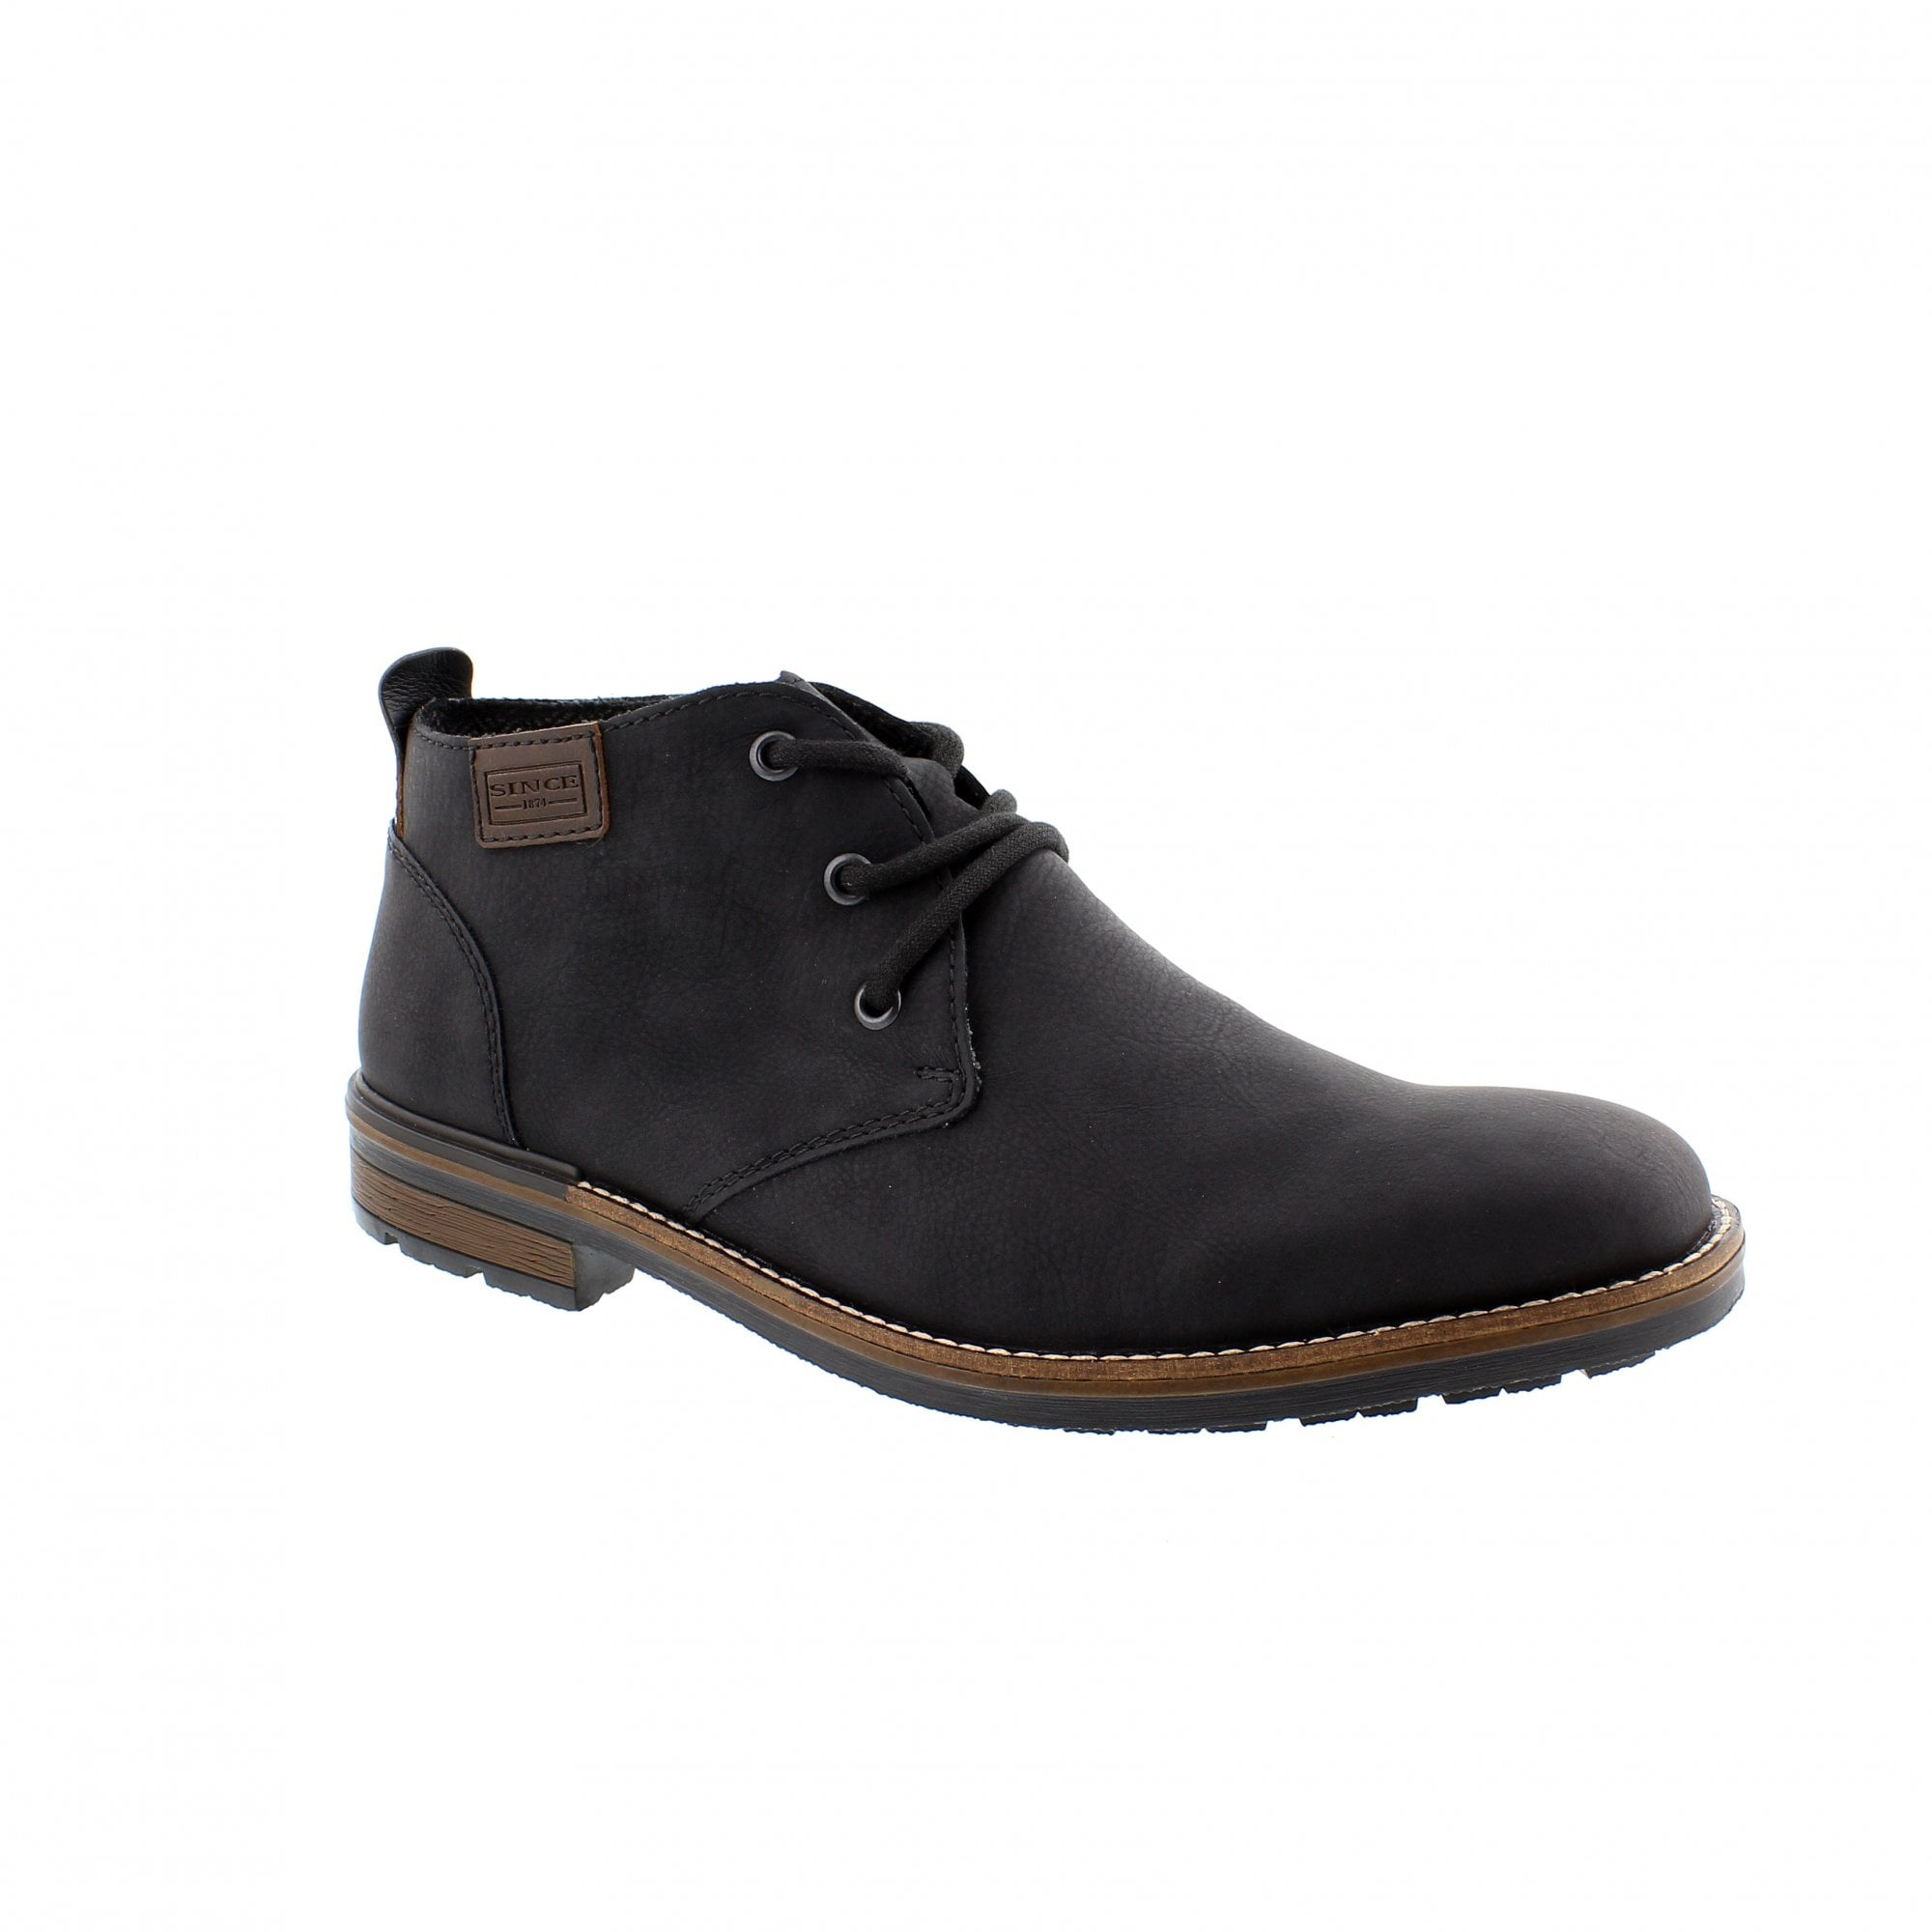 8f7b770642e Rieker B1340-01 Black Mens Ankle Boots | Rogerson Shoes